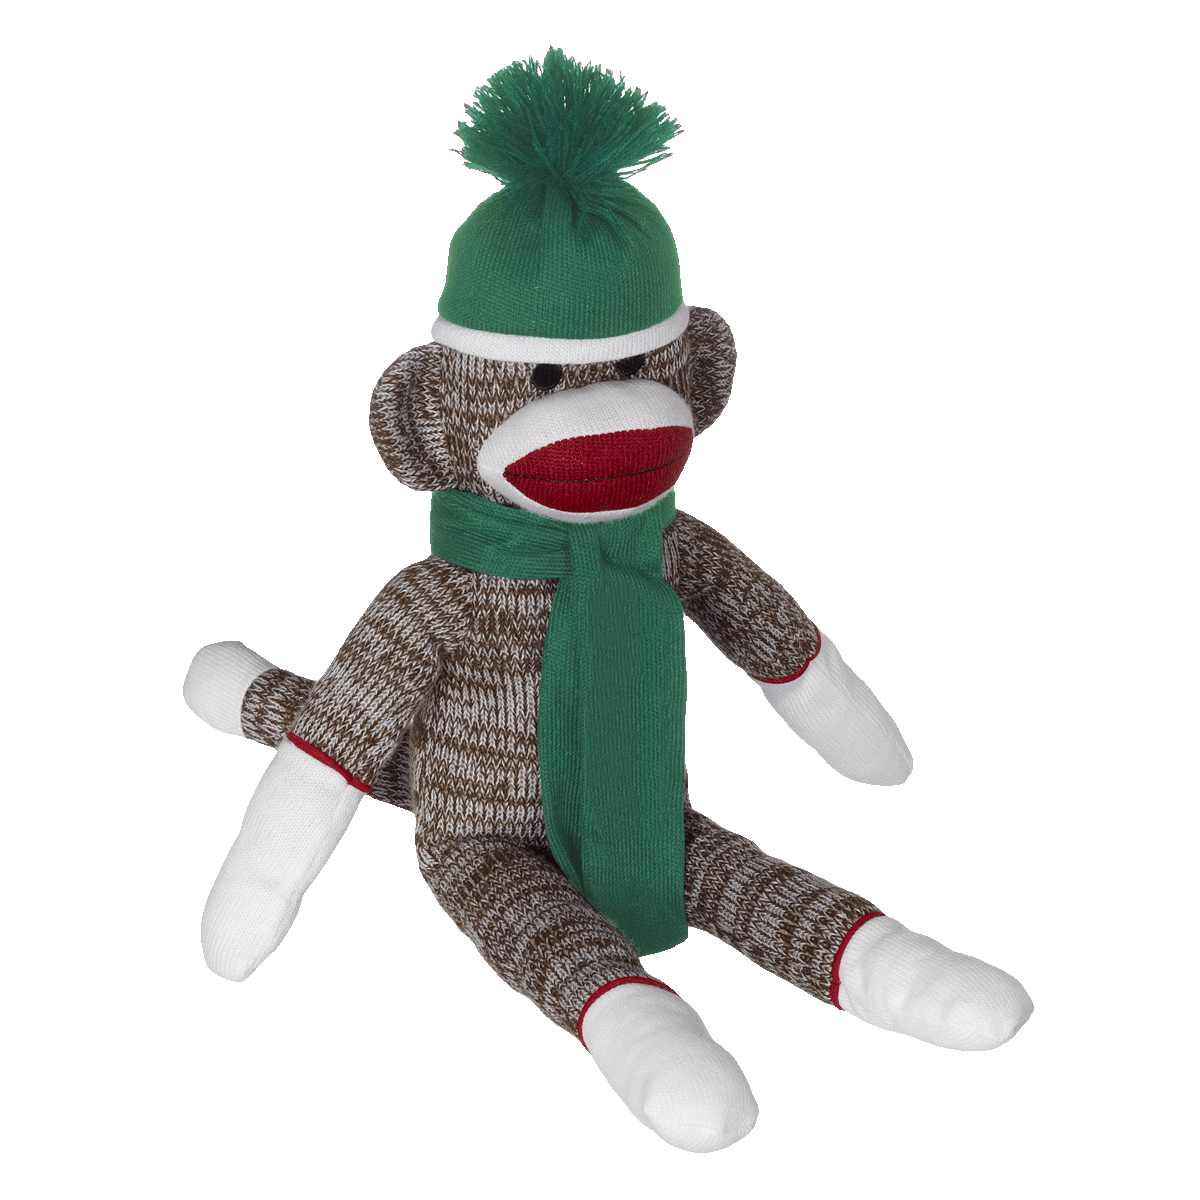 Sock monkey png. Embroider buddy